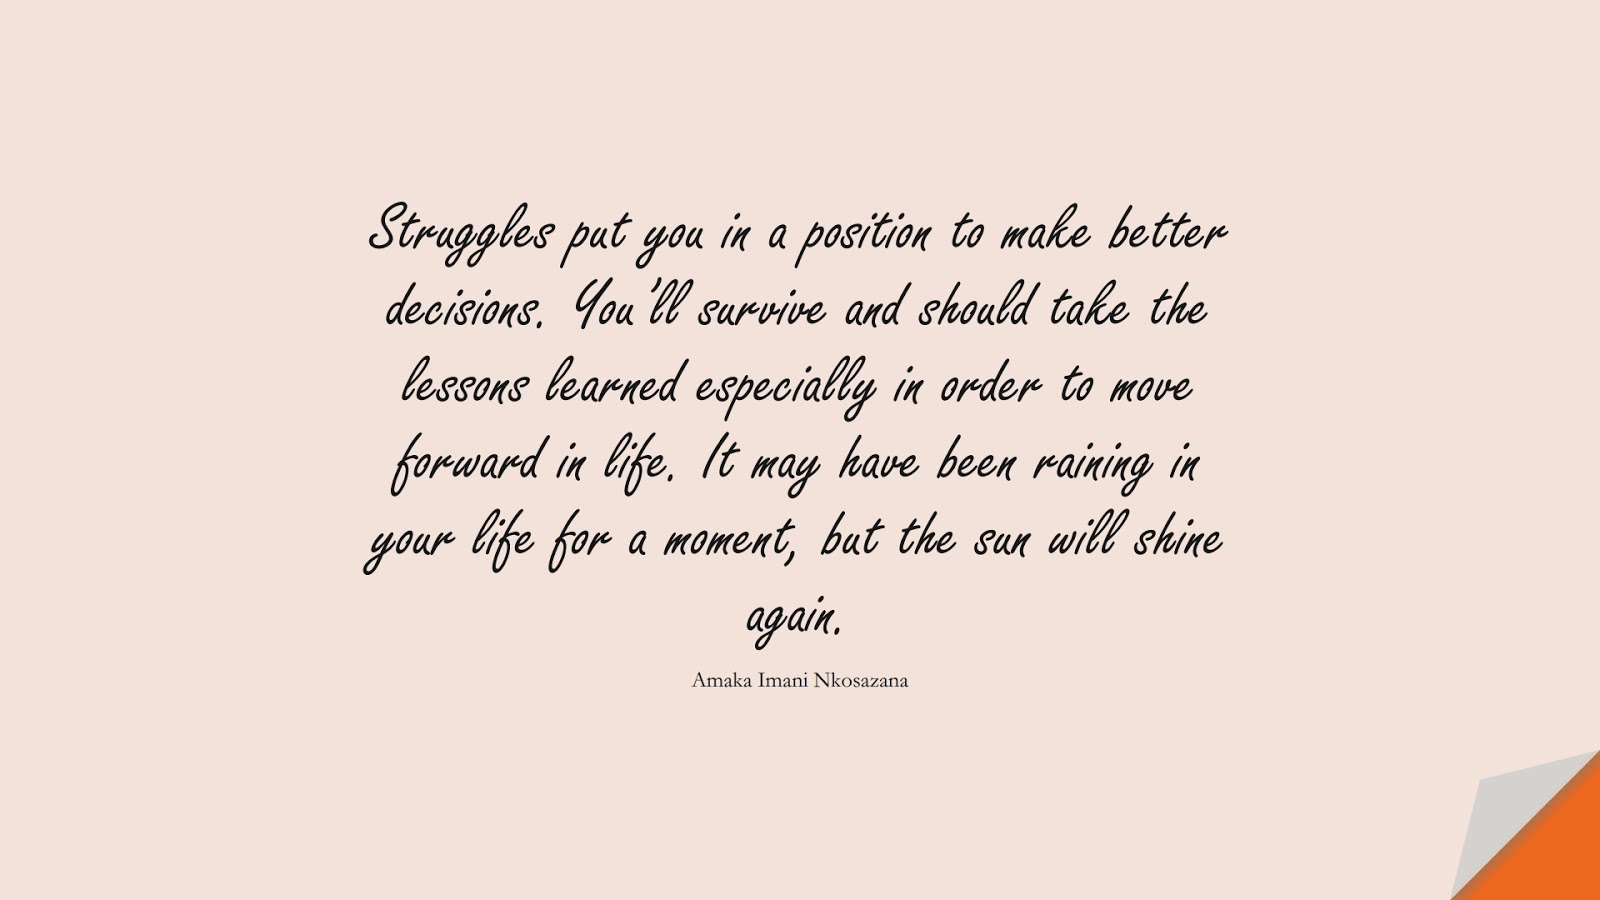 Struggles put you in a position to make better decisions. You'll survive and should take the lessons learned especially in order to move forward in life. It may have been raining in your life for a moment, but the sun will shine again. (Amaka Imani Nkosazana);  #MotivationalQuotes